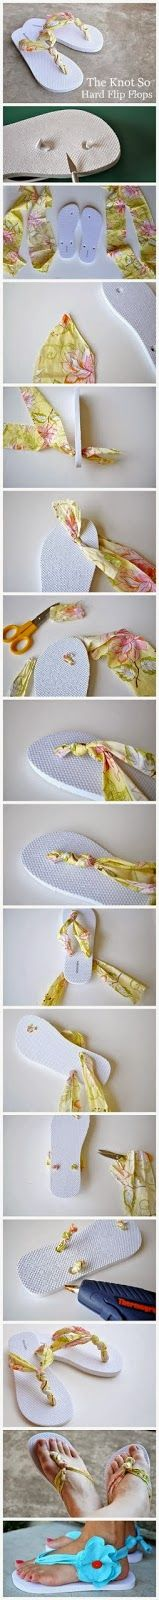 My DIY Projects: Easy Way To Make a Flip Flops